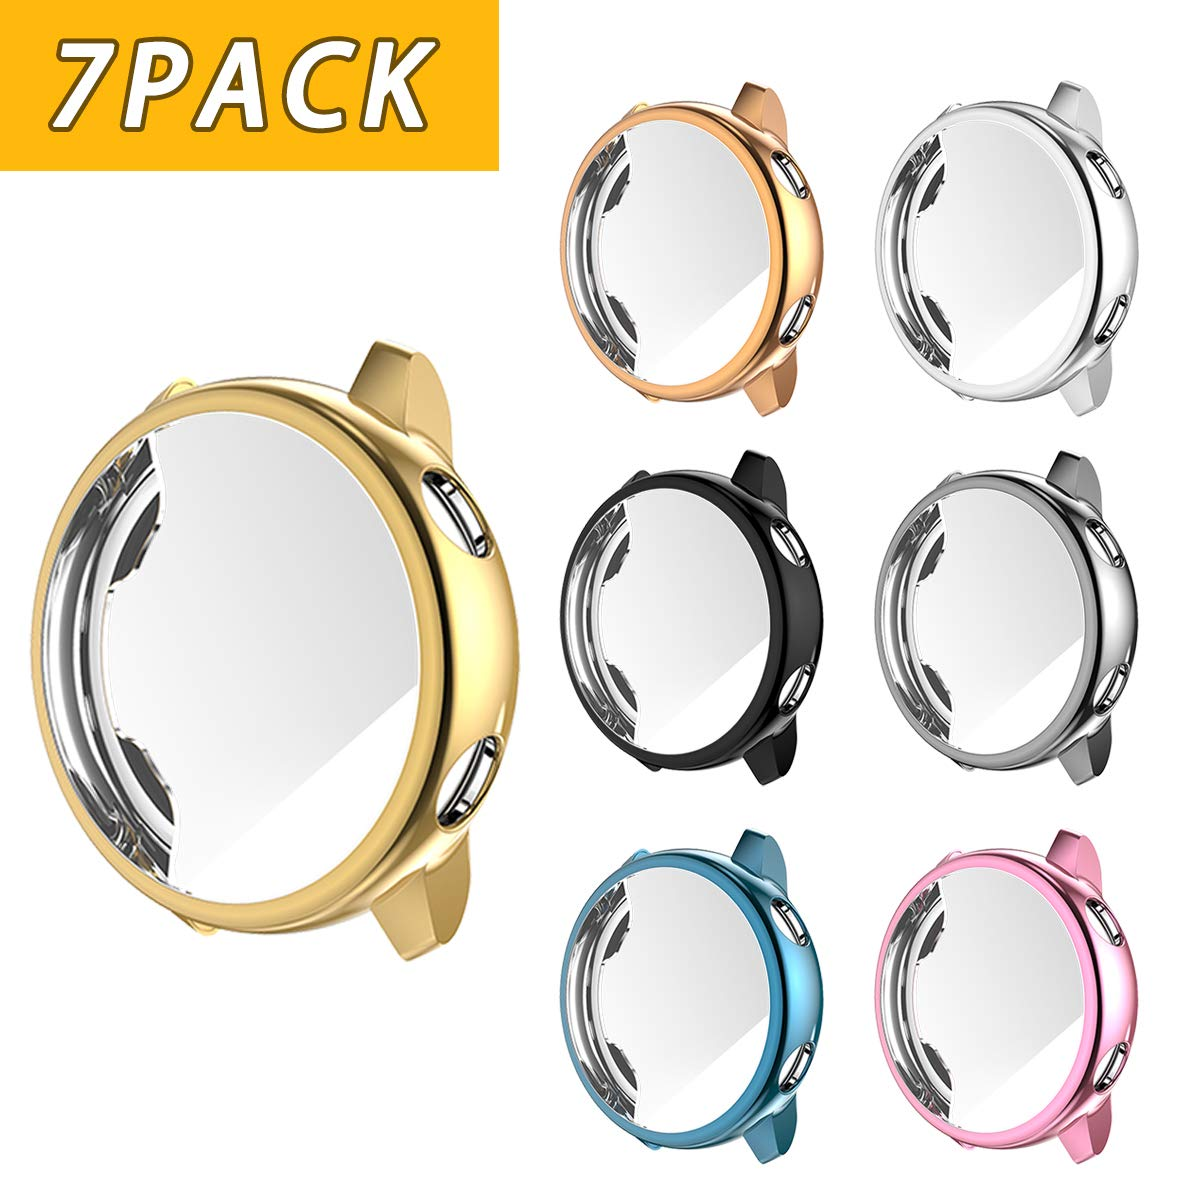 Landhoo Screen Protector for Samsung Galaxy Watch Active, Soft TPU Full Coverage Case, Electroplate Protective Cover Shell (7COLORS) by Landhoo